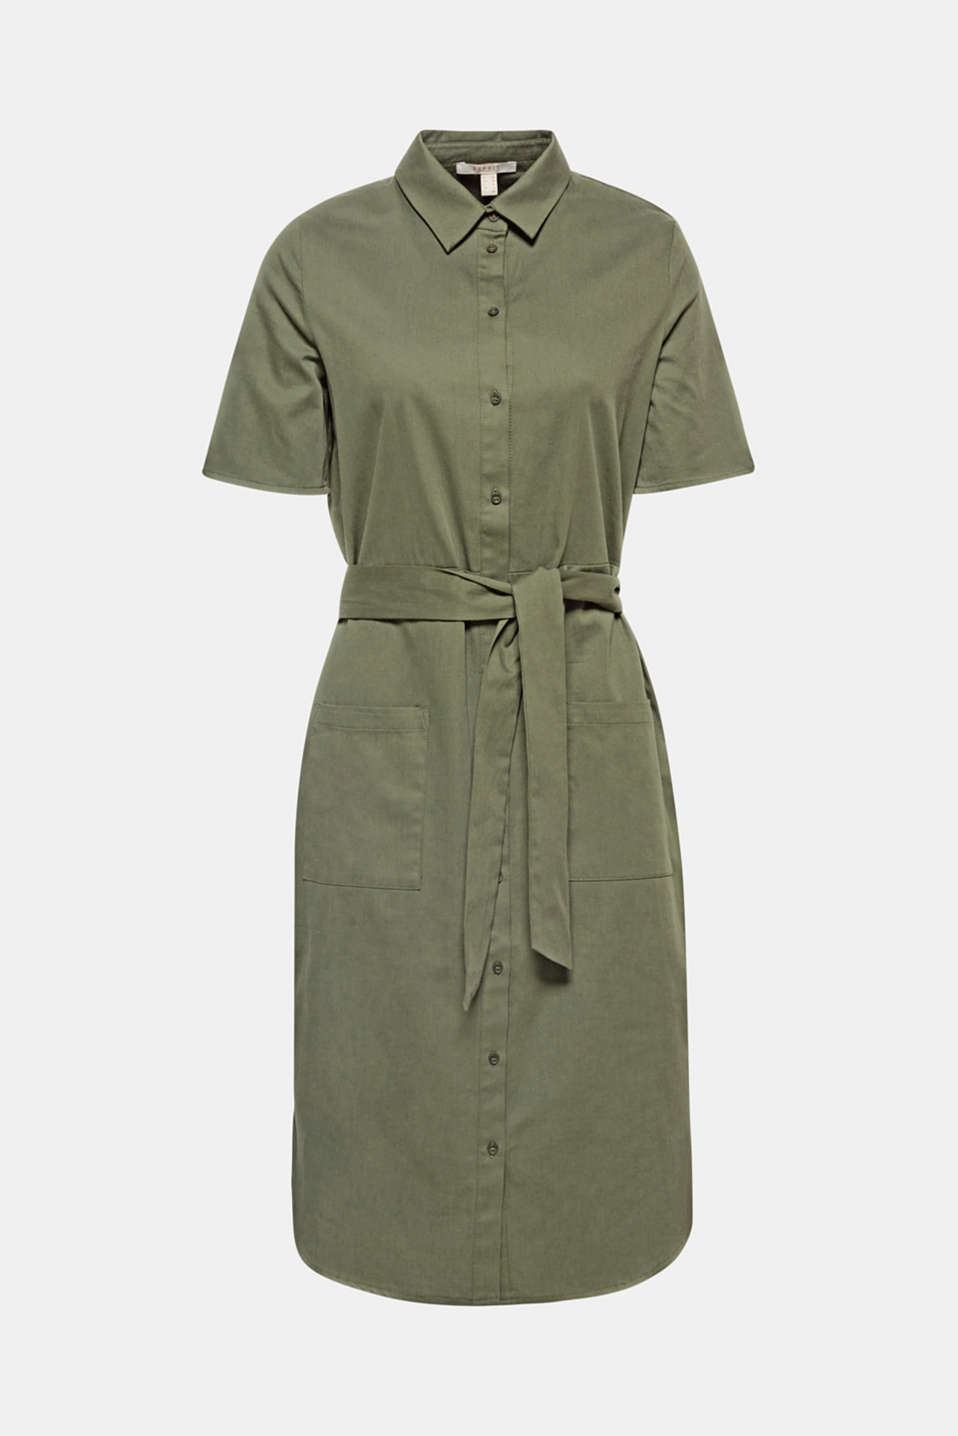 This shirt dress in a feminine military style is composed of lightweight stretch cotton and features a wide tie-around belt, patch front pockets and a rounded hem.